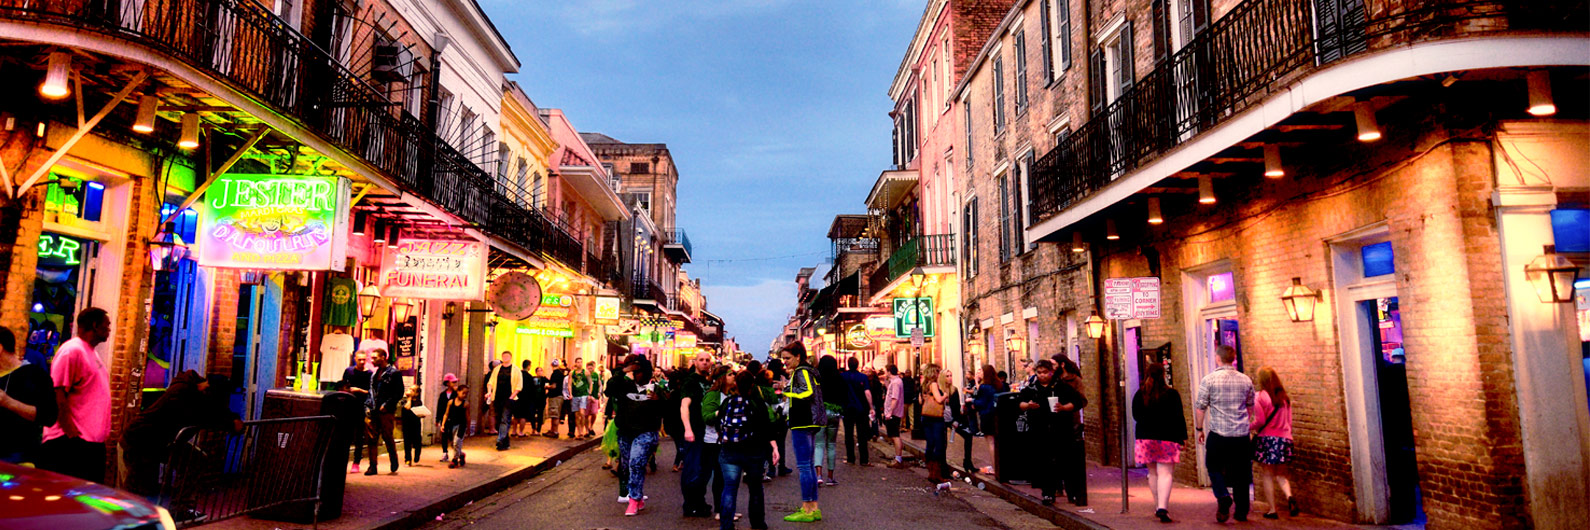 Car Rental In French Quarter New Orleans